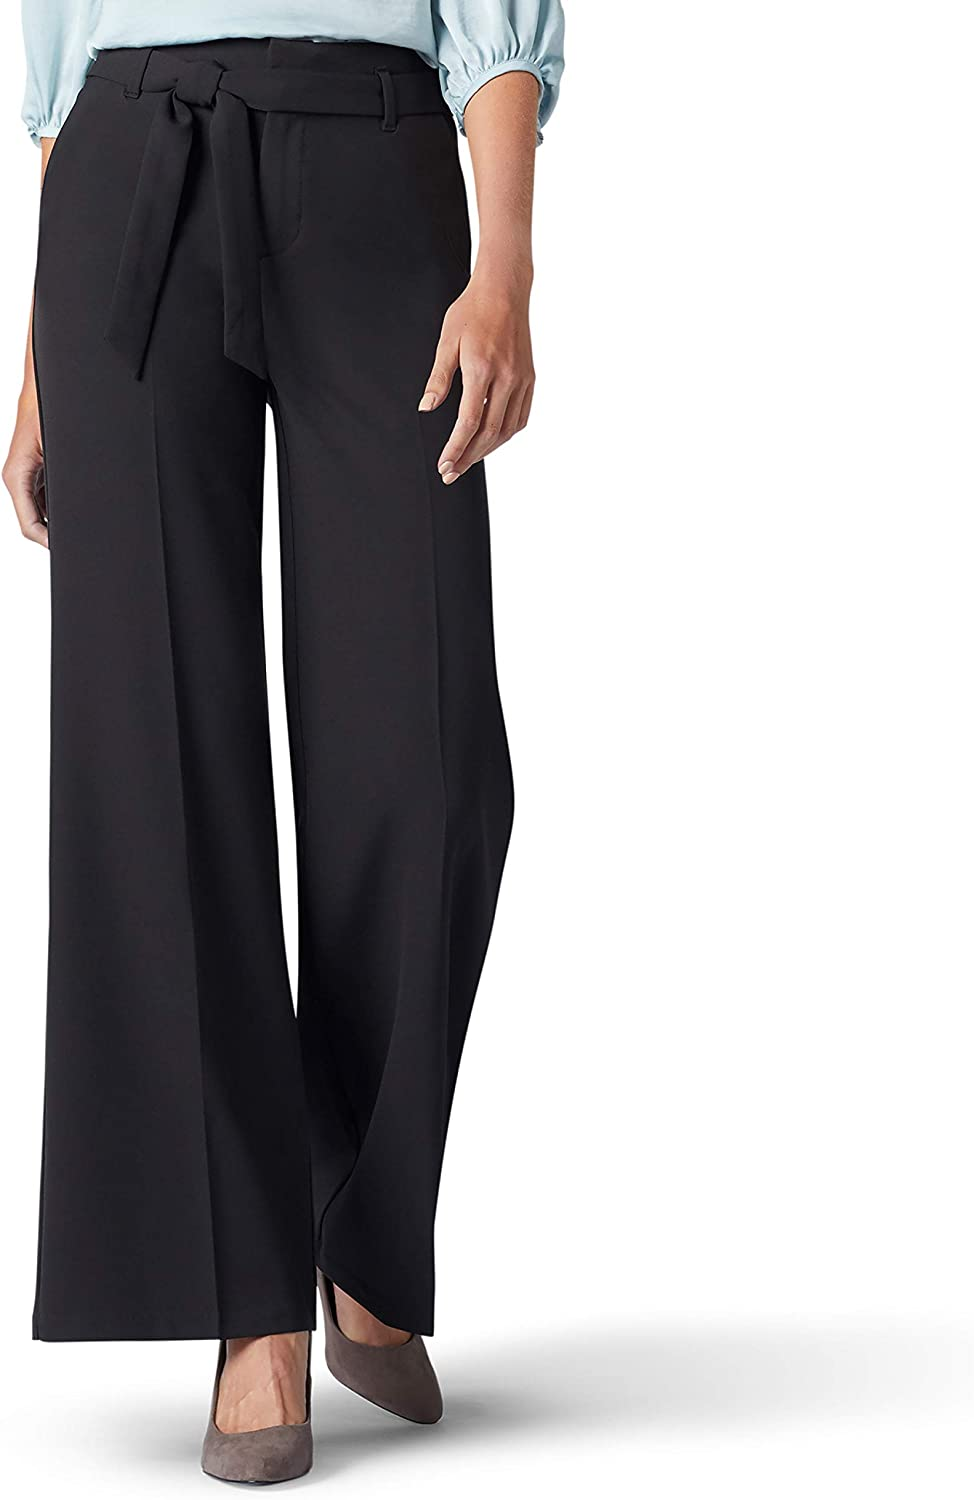 Lee Womens Standard Flex Motion Regular Fit Wide Leg Self Tie Pant